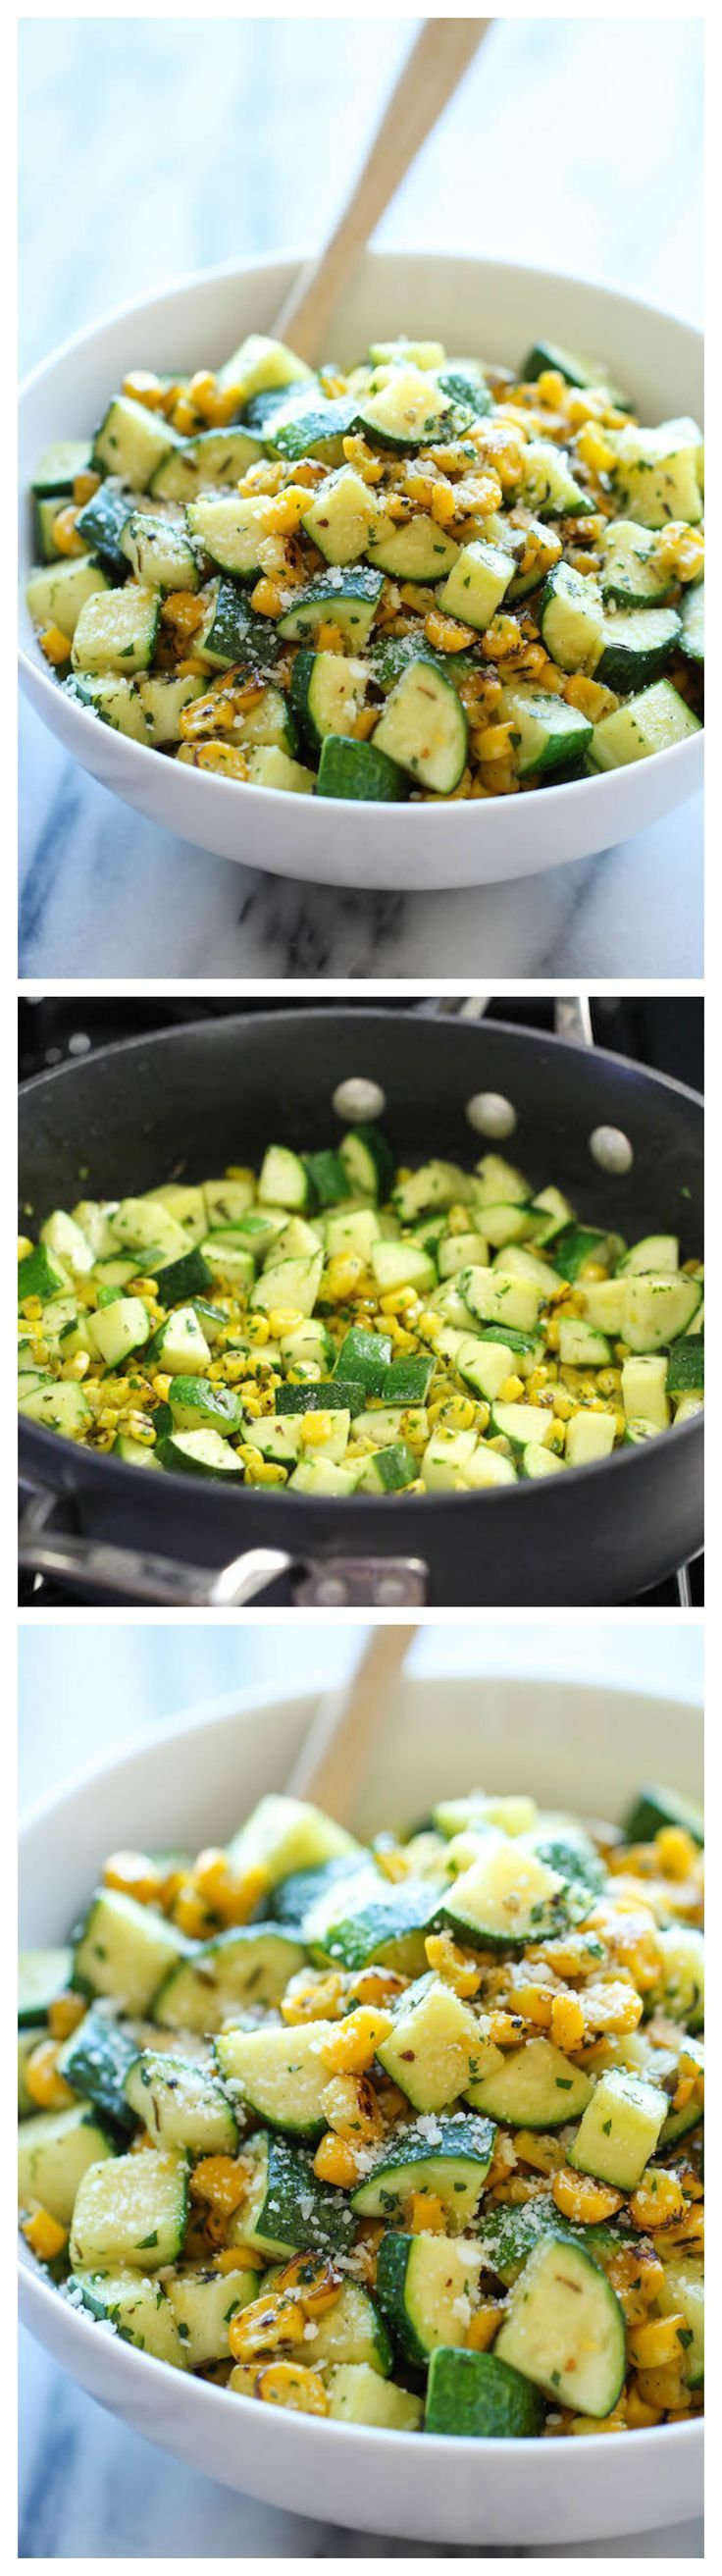 Parmesan Zucchini and Corn is part of Parmesan zucchini - A healthy 10 minute side dish to dress up any meal  It's so simple yet full of flavor!